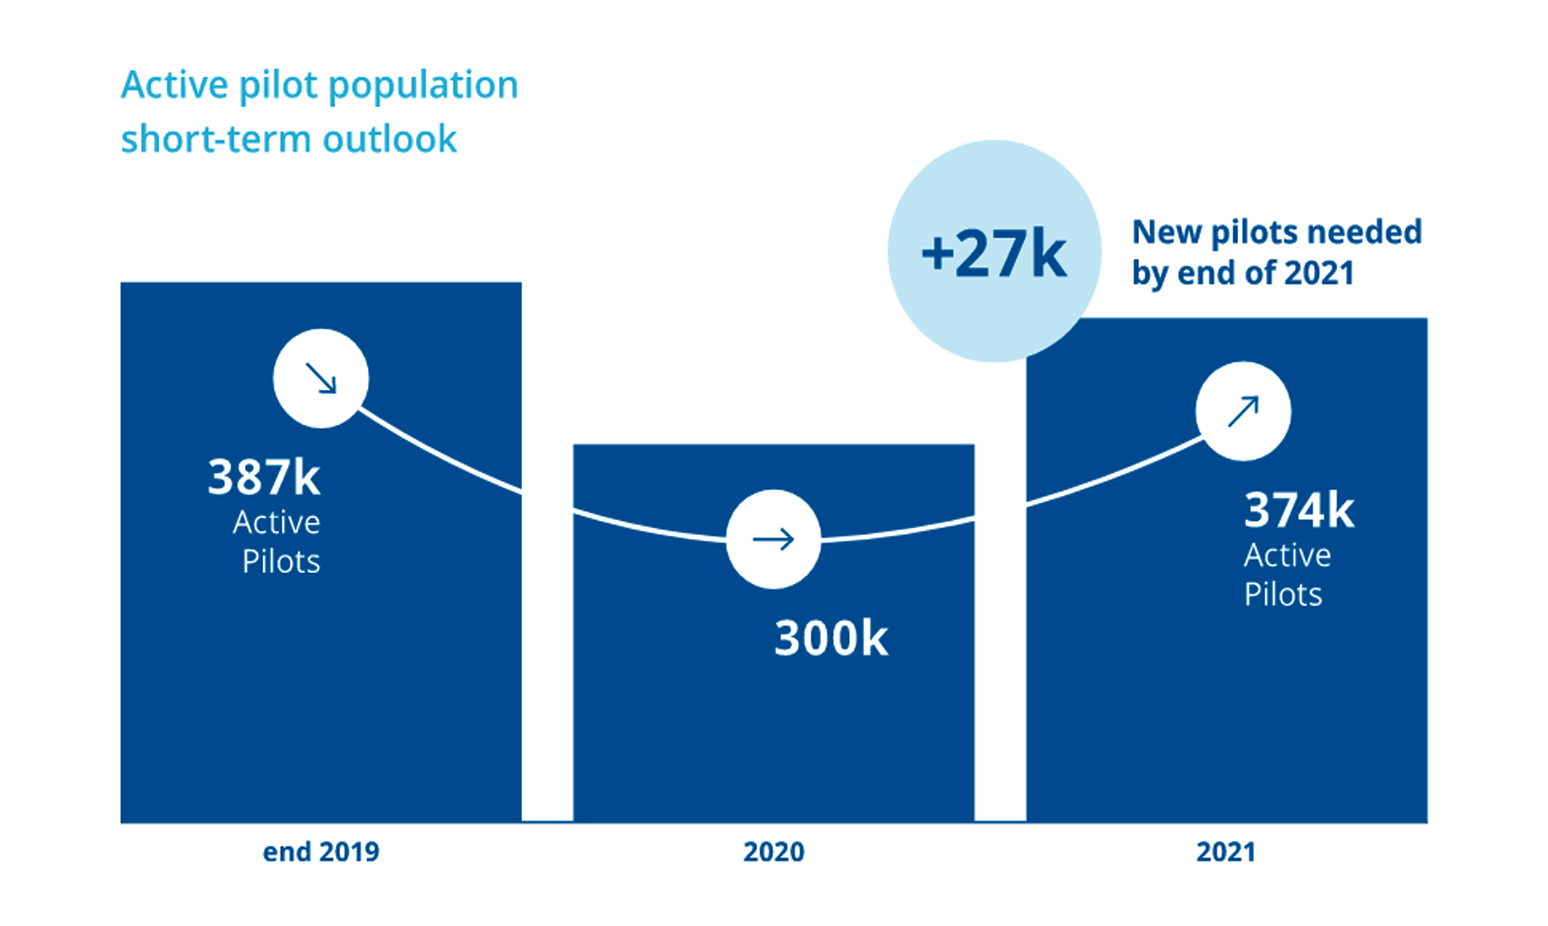 CAE Forecasts Need for 260,000 New Pilots